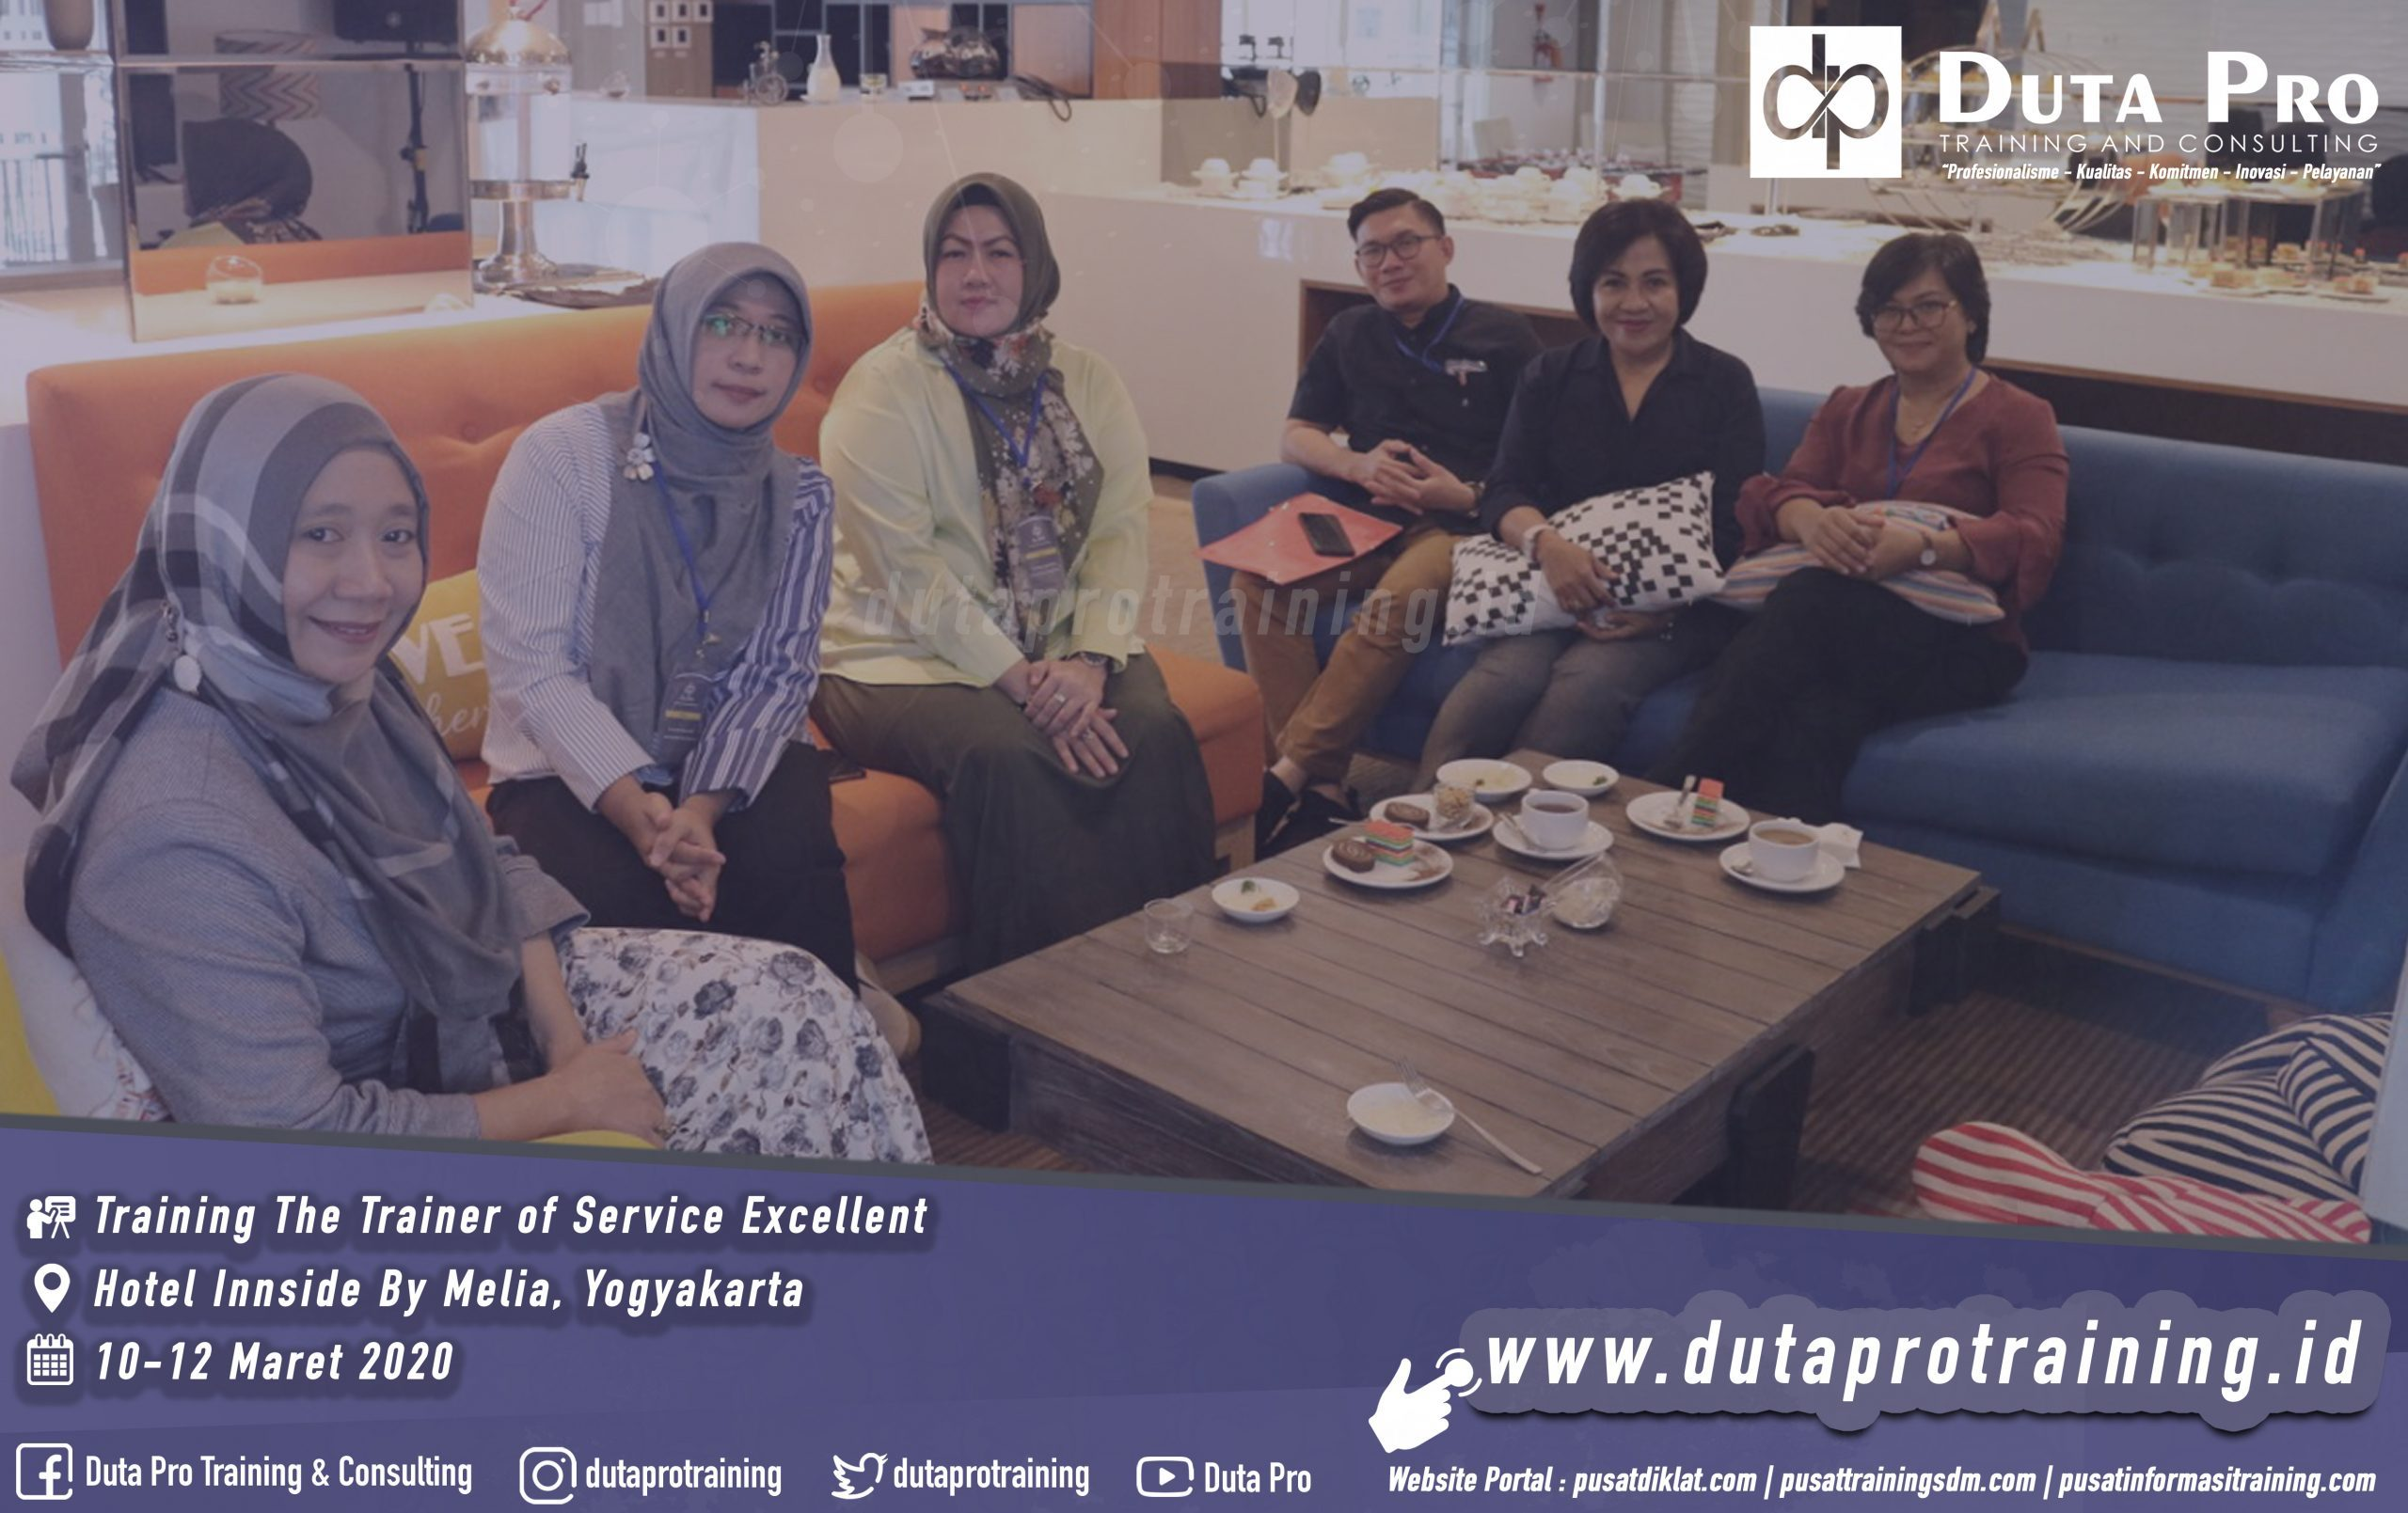 Training The Trainer of Service Excellent Yogyakarta Galeri Website